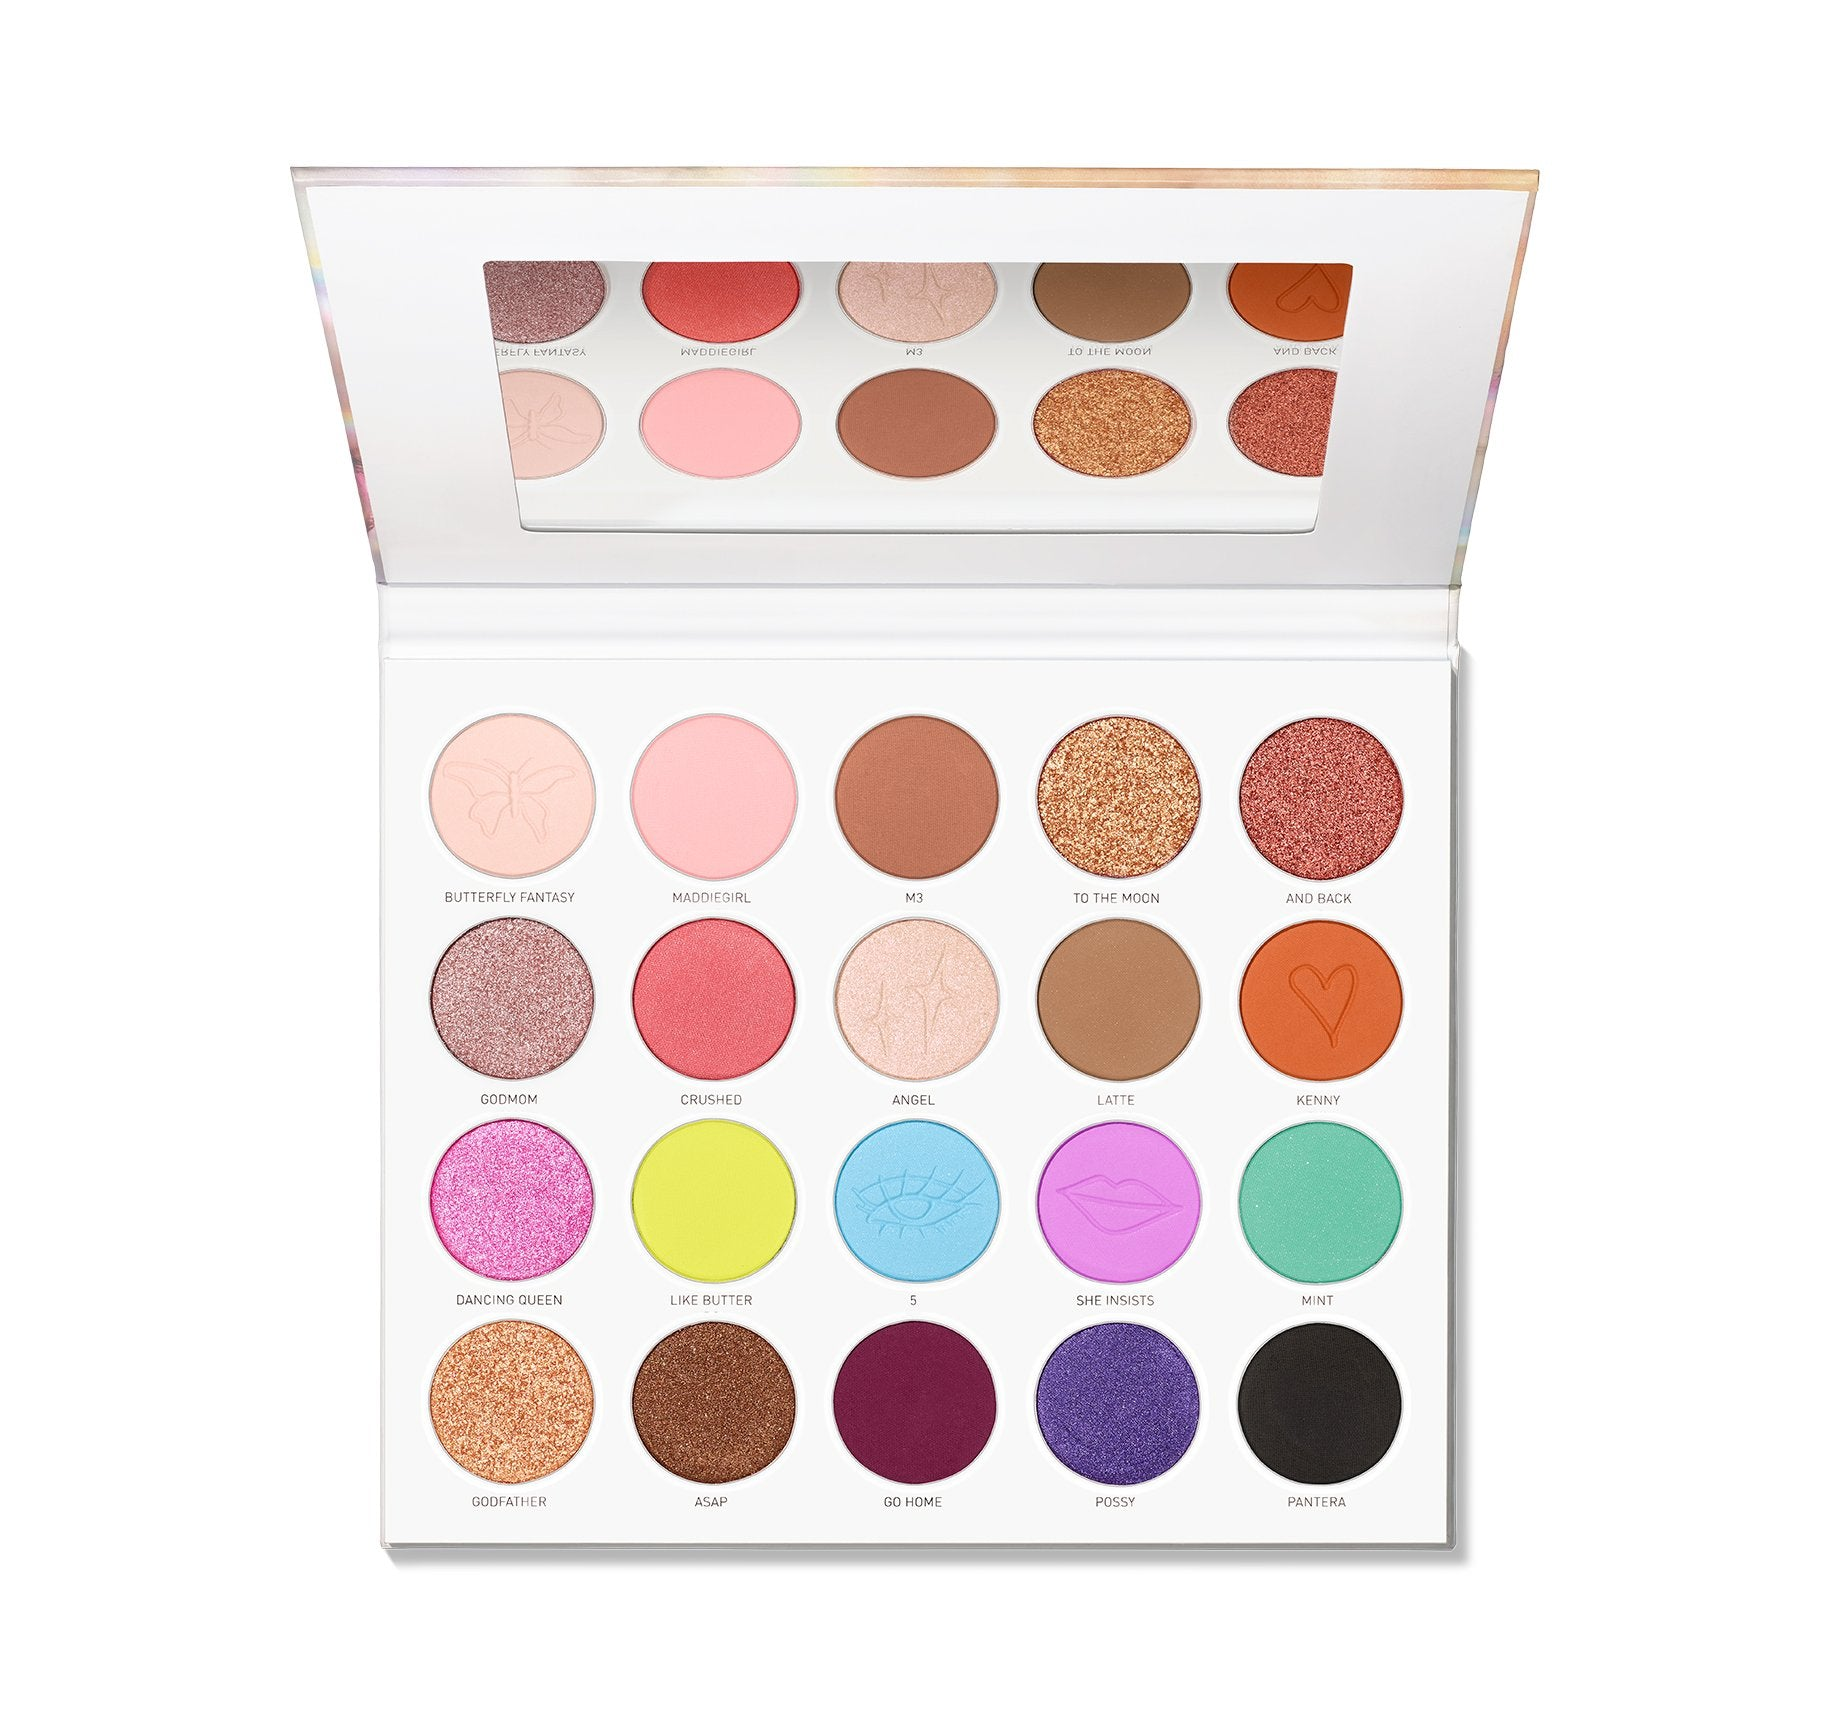 MORPHE X MADDIE ZIEGLER THE IMAGINATION PALETTE, view larger image